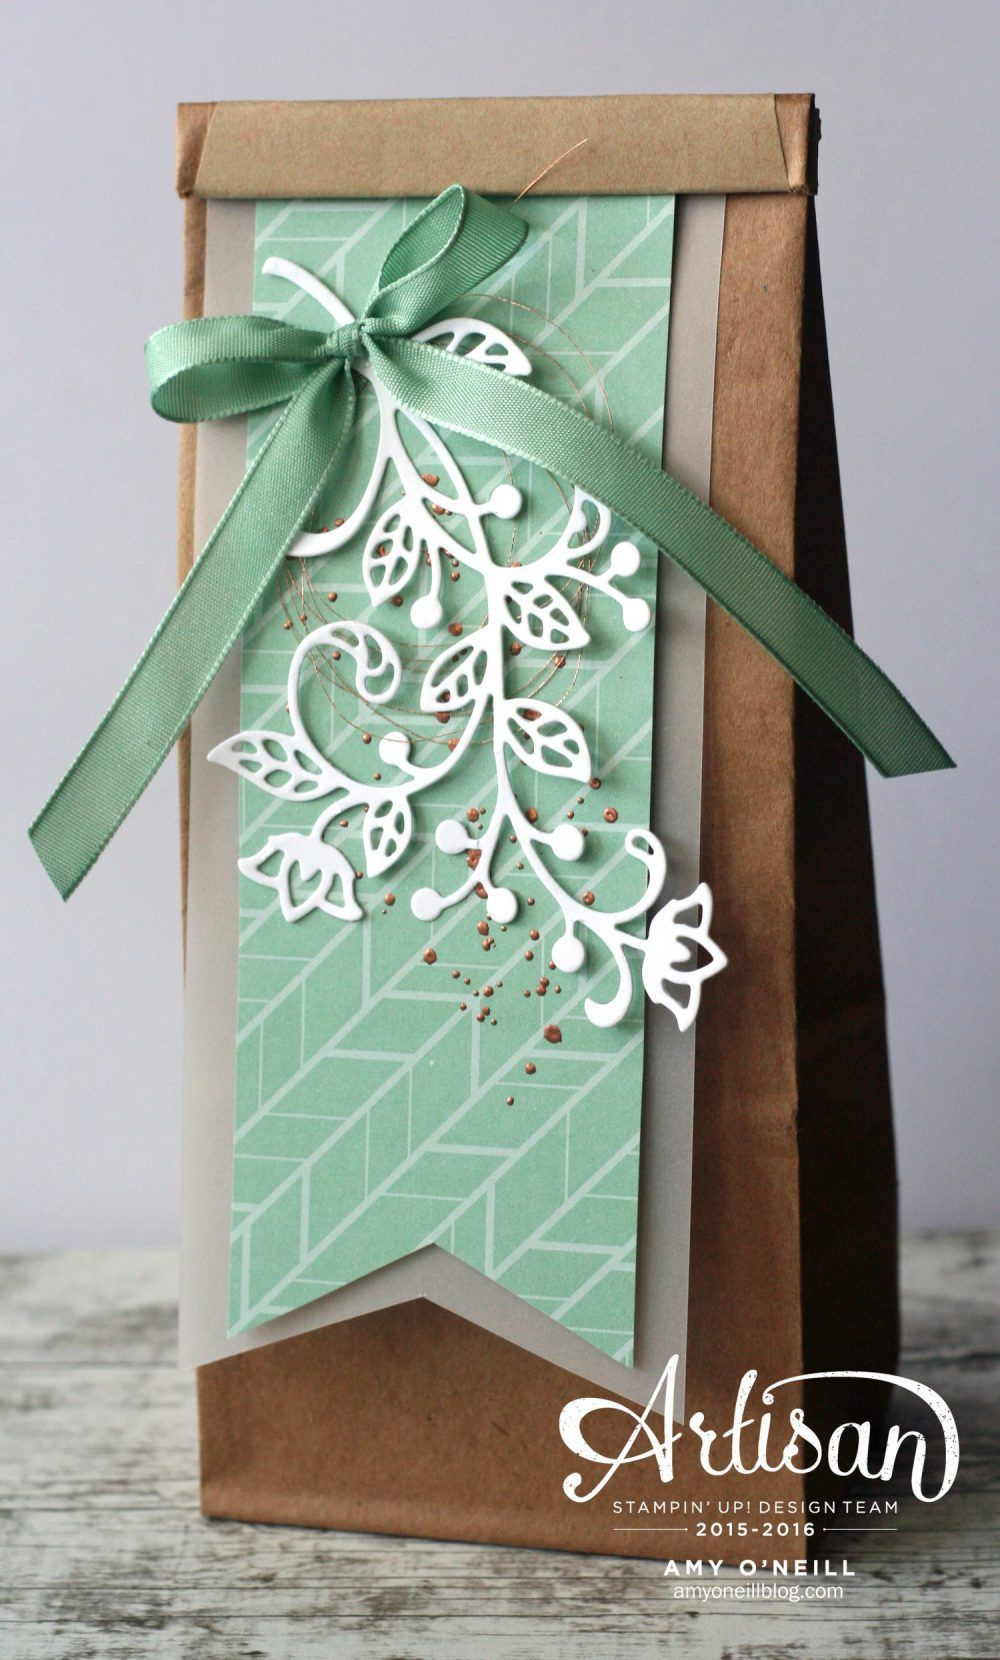 The flourish thinlits dies by stampin up help to make easy the flourish thinlits dies by stampin up help to make easy elegant gift treat bagscreative cardswrapping ideaselegant gift wrappinggreeting kristyandbryce Gallery